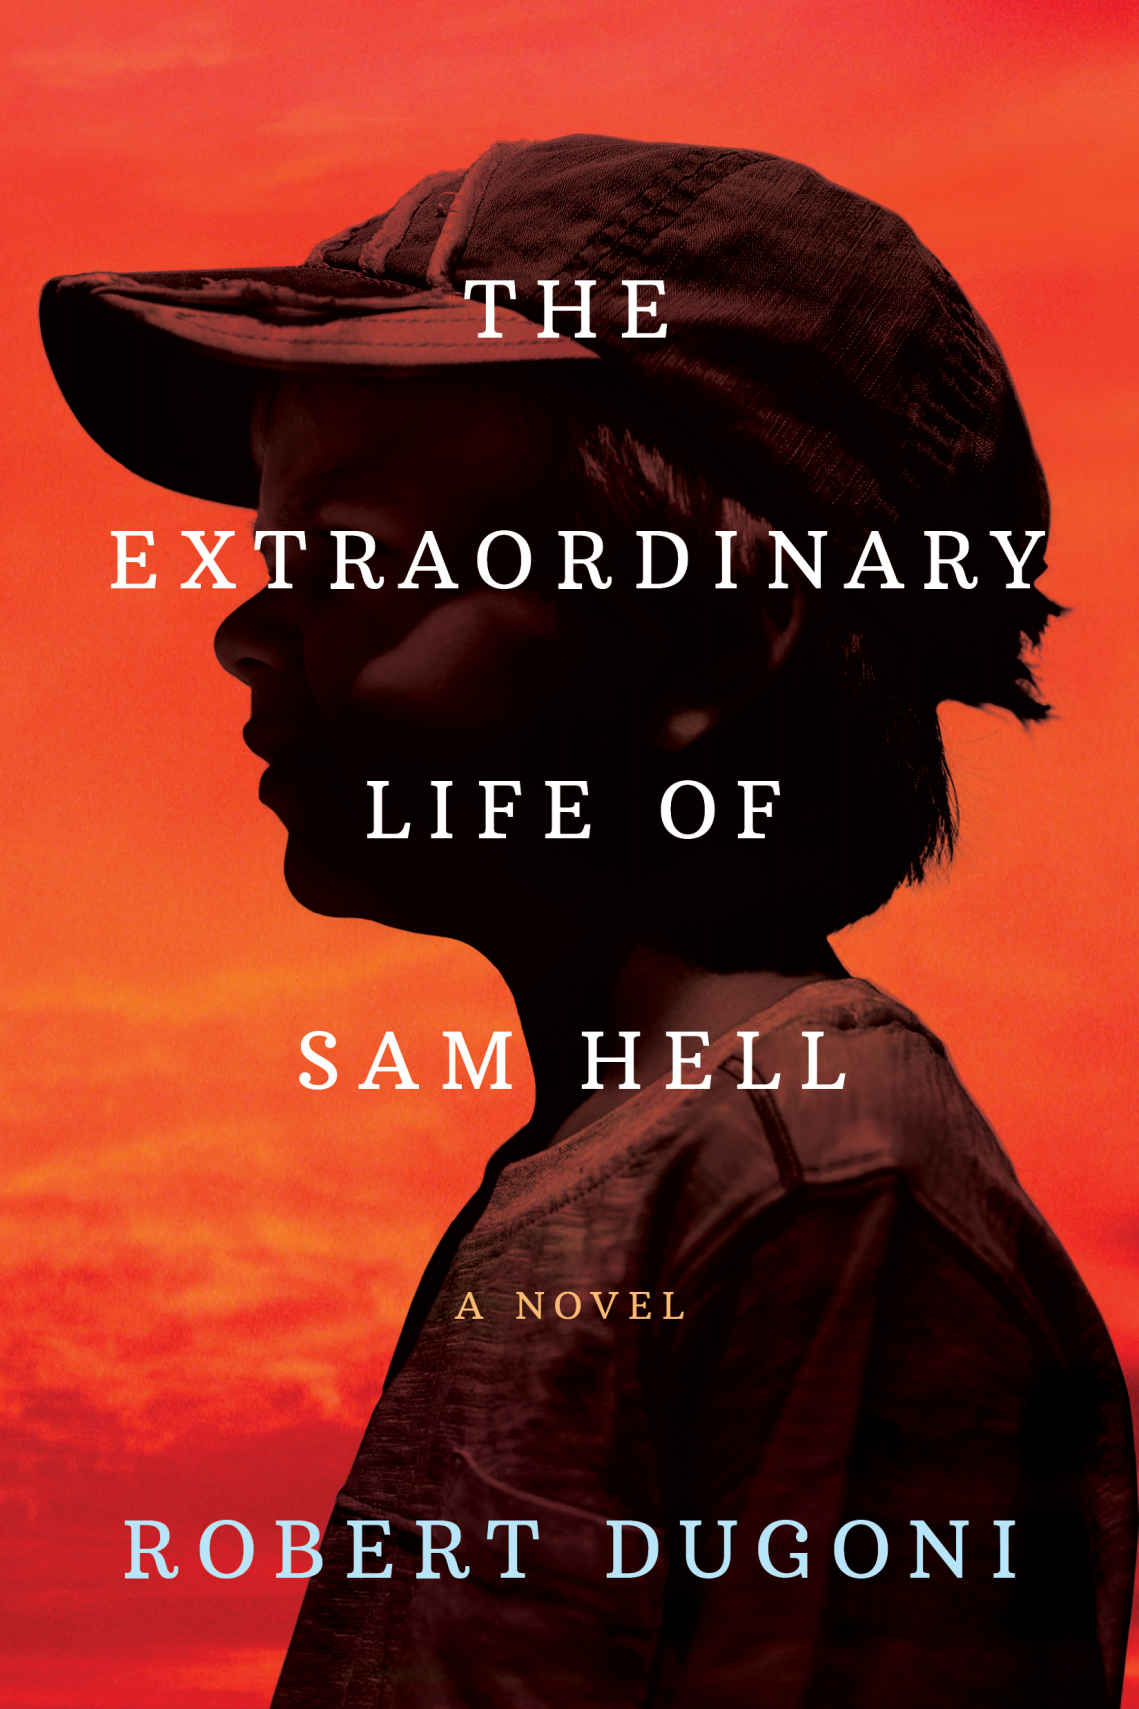 The Extraordinary Life of Sam Hell: A Novel - Robert Dugoni [kindle] [mobi]